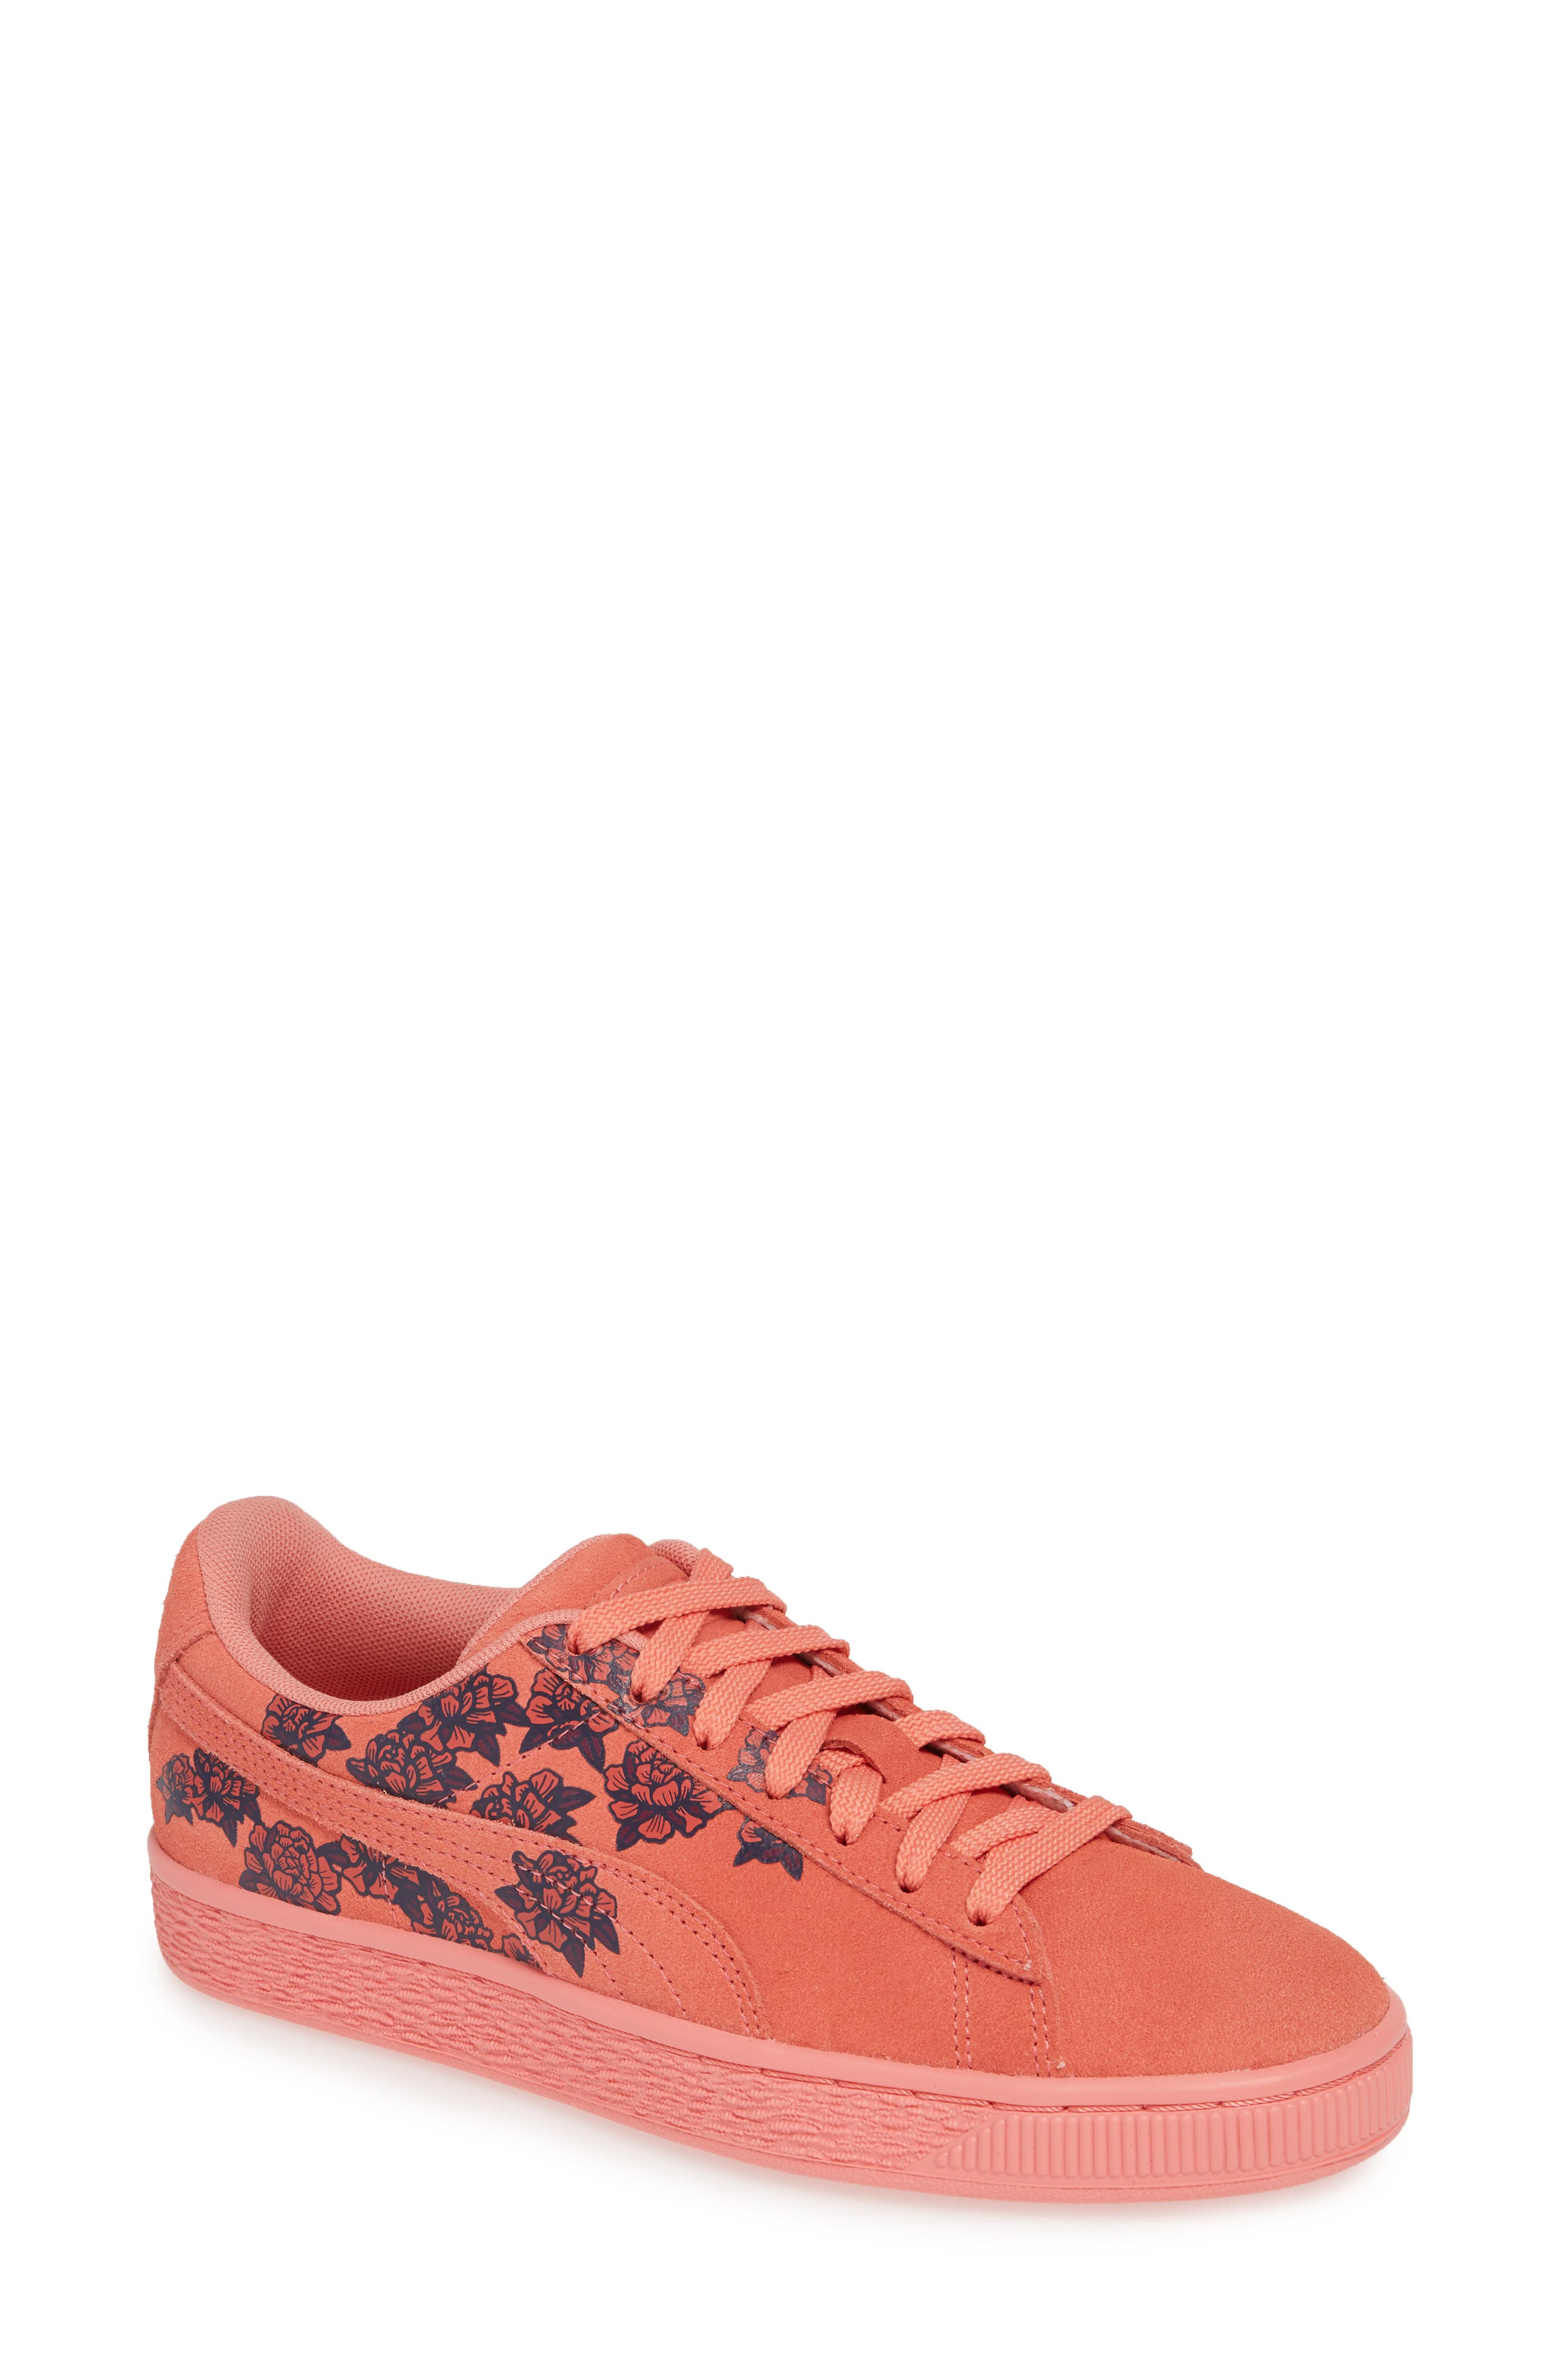 PUMA Suede TOL Graphic Sneaker, Main, color, SHELL PINK